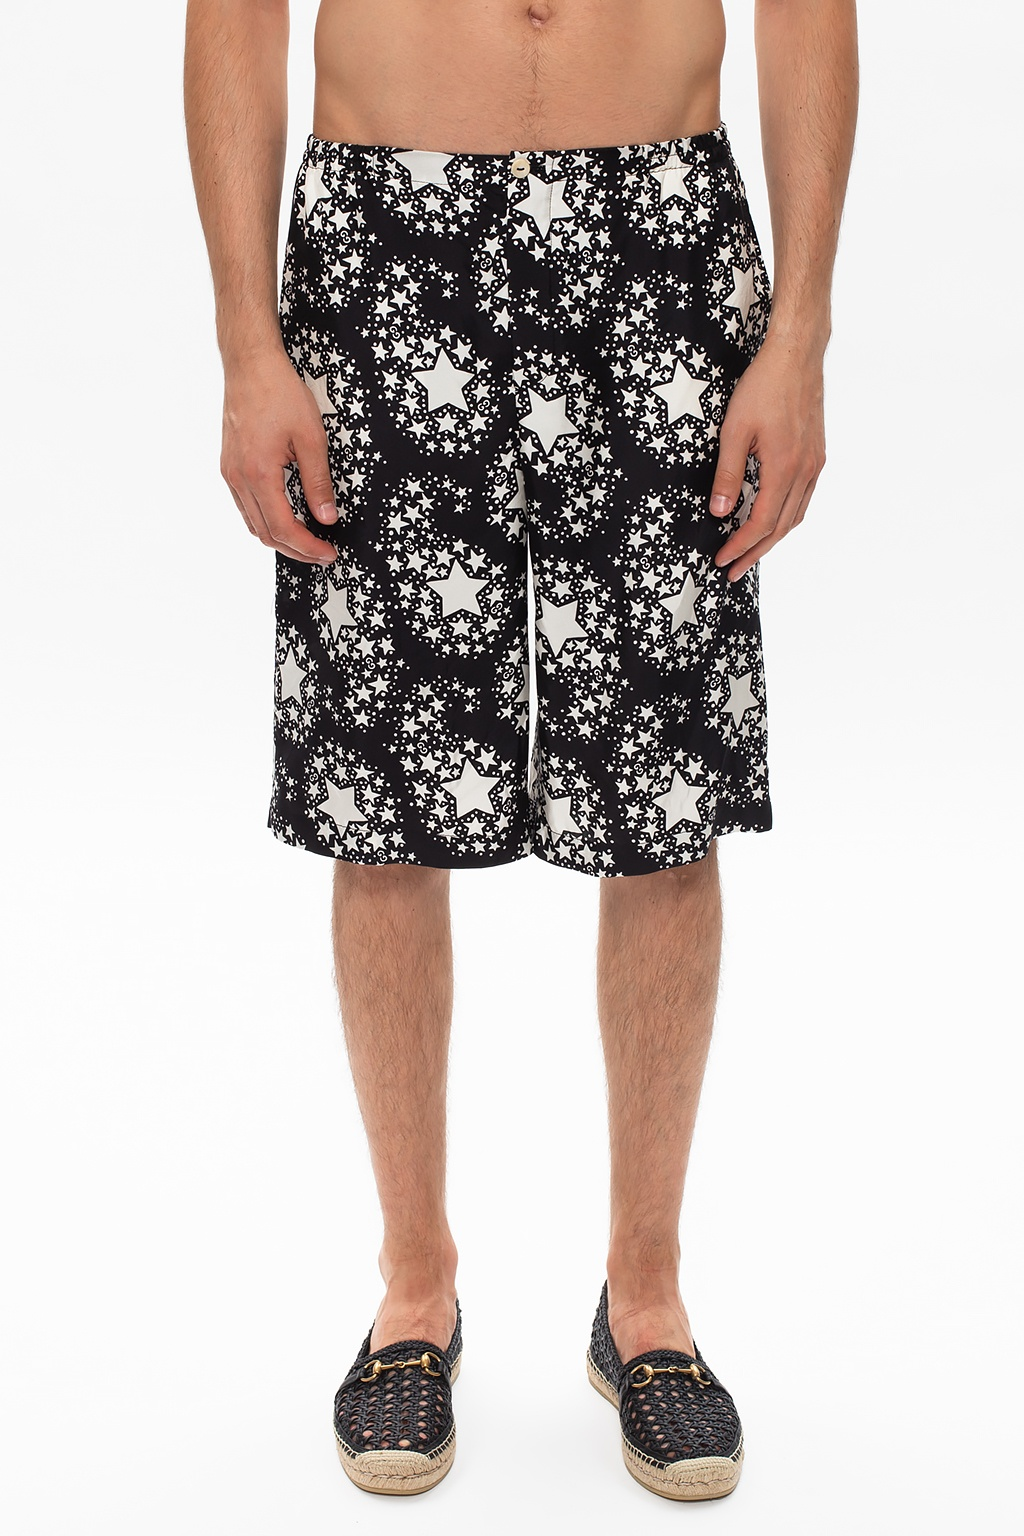 Gucci Patterned shorts